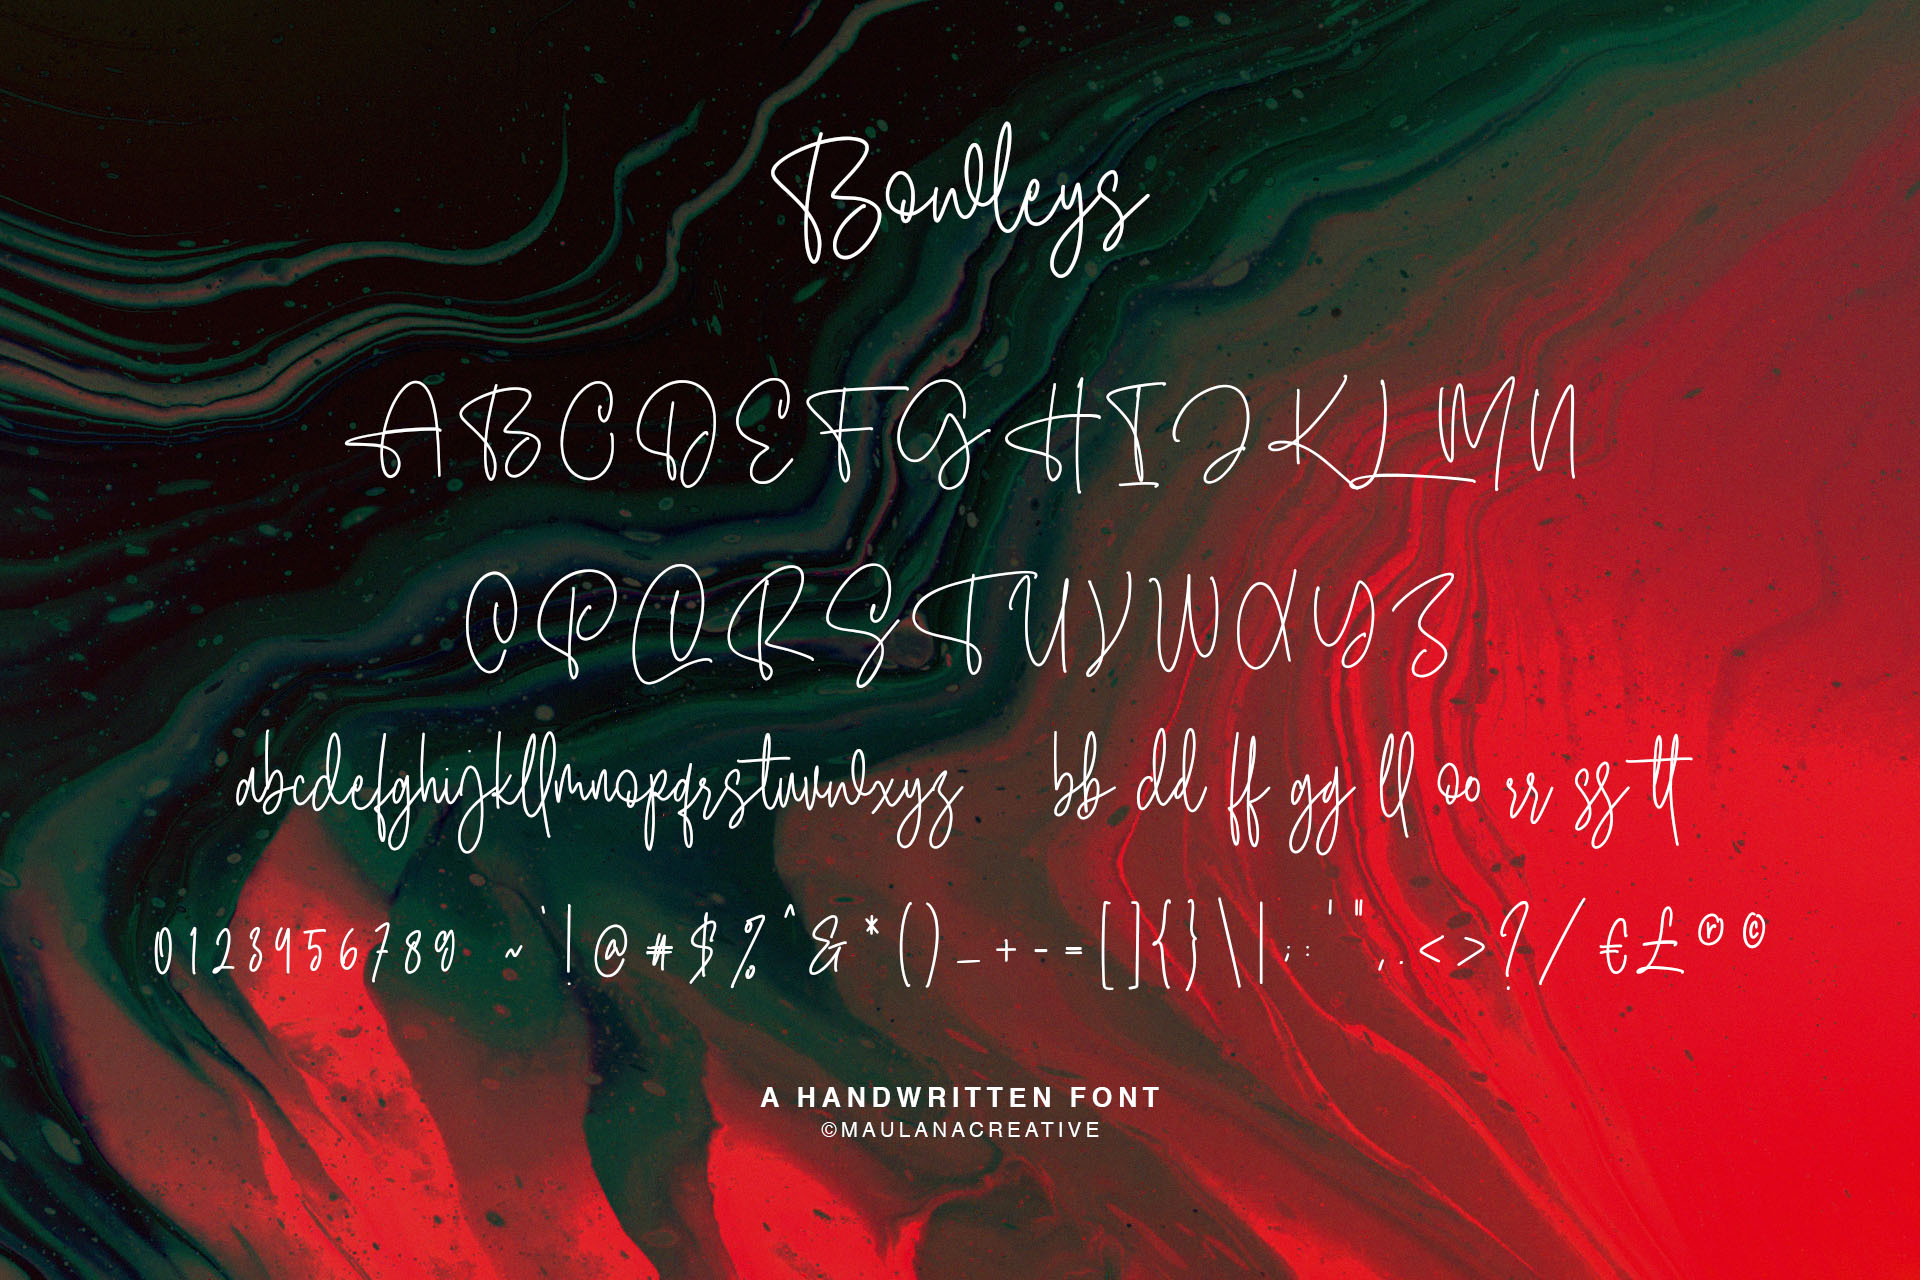 Bowleys Typeface example image 10